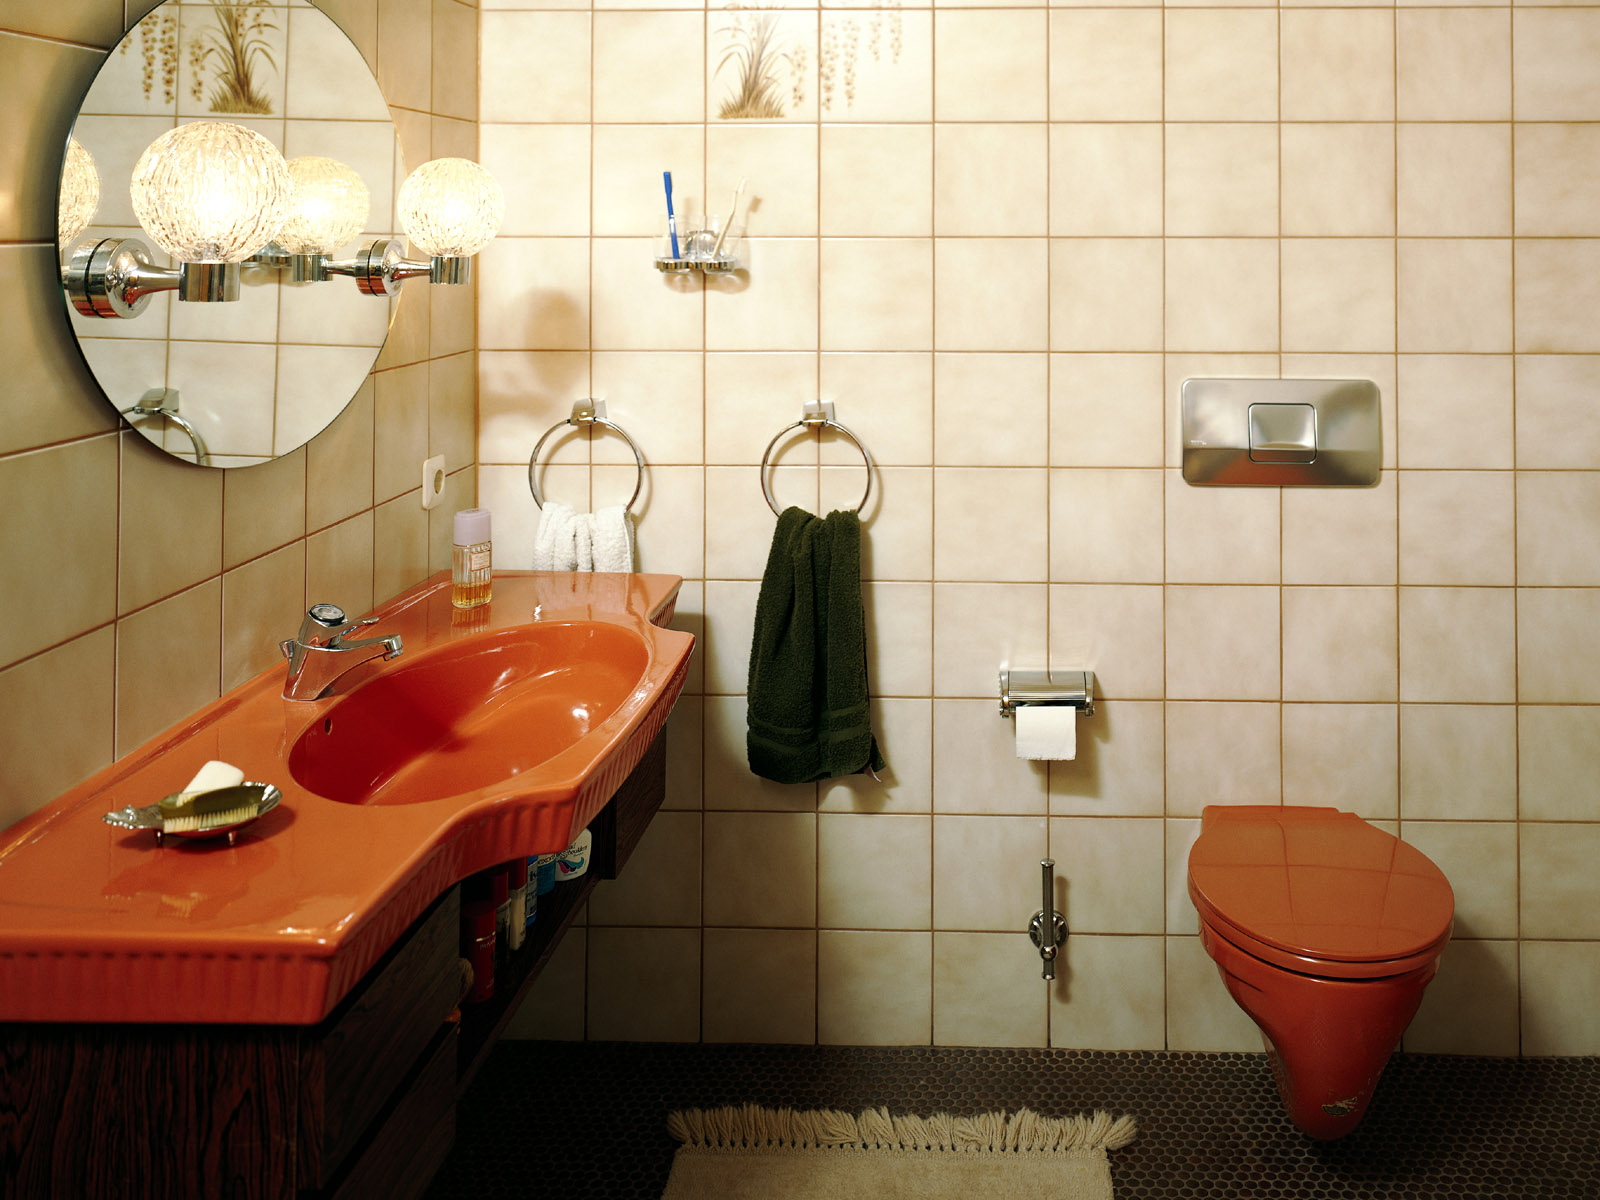 Simple indian bathrooms - Bath Rooms And Toilets Designs